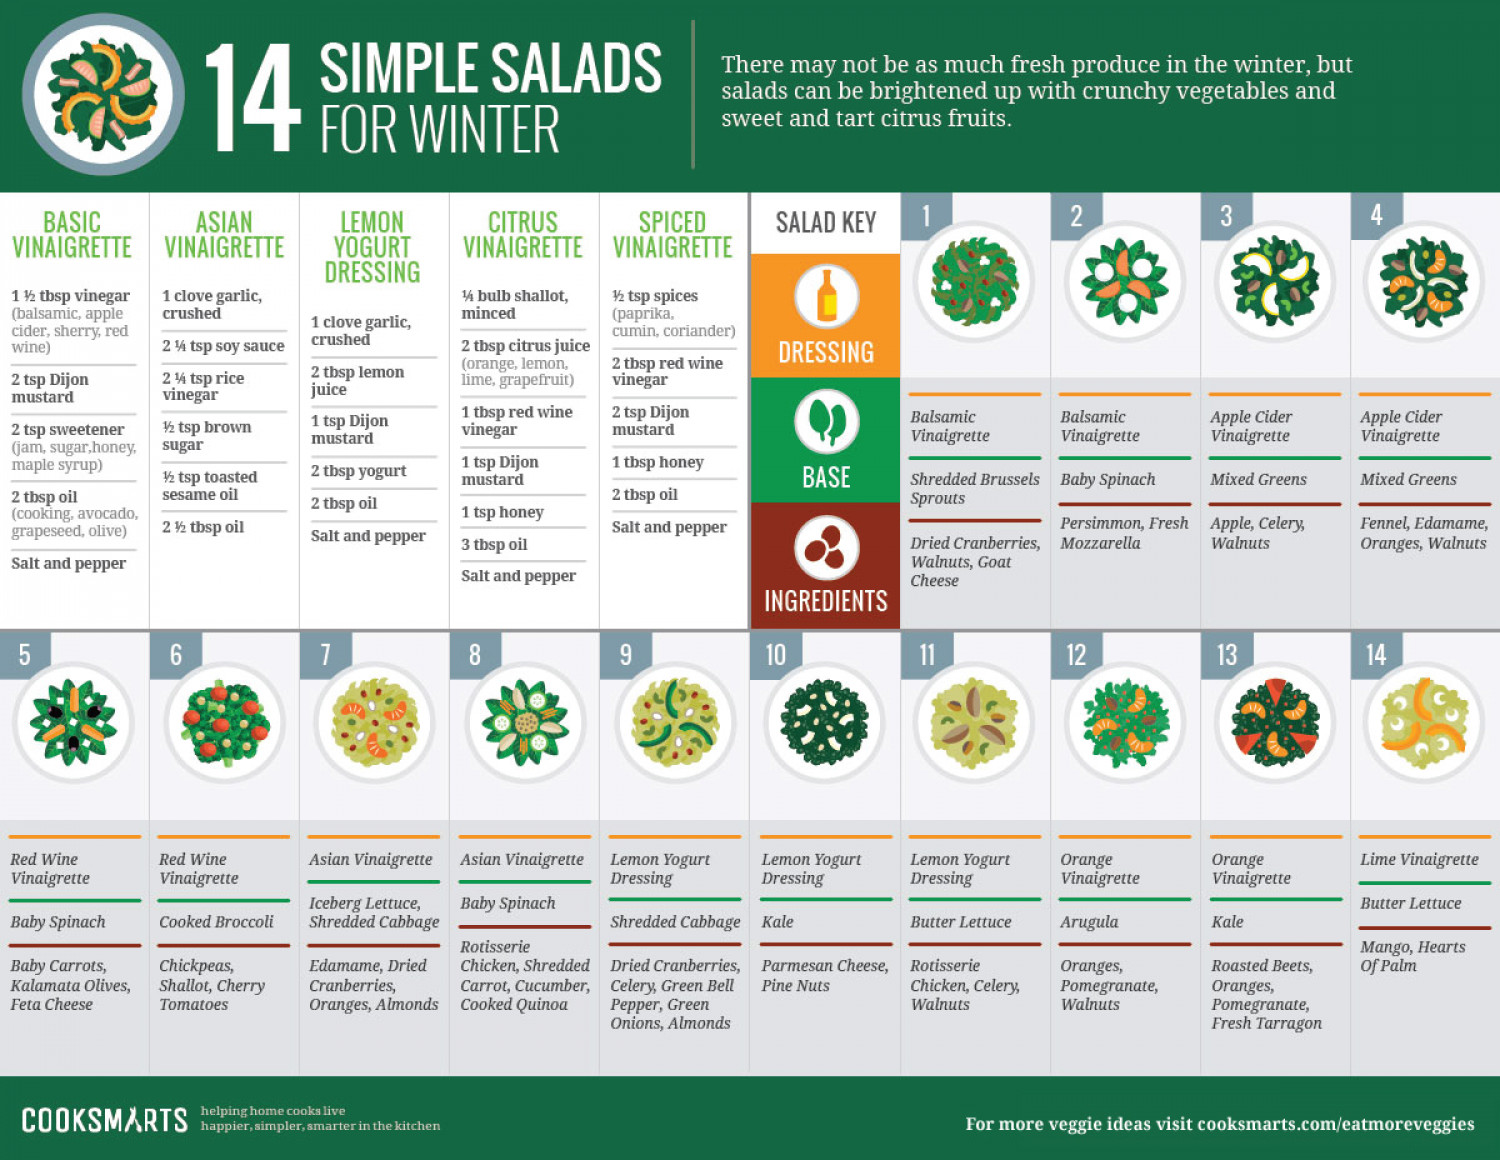 14 Simple Salads for Winter